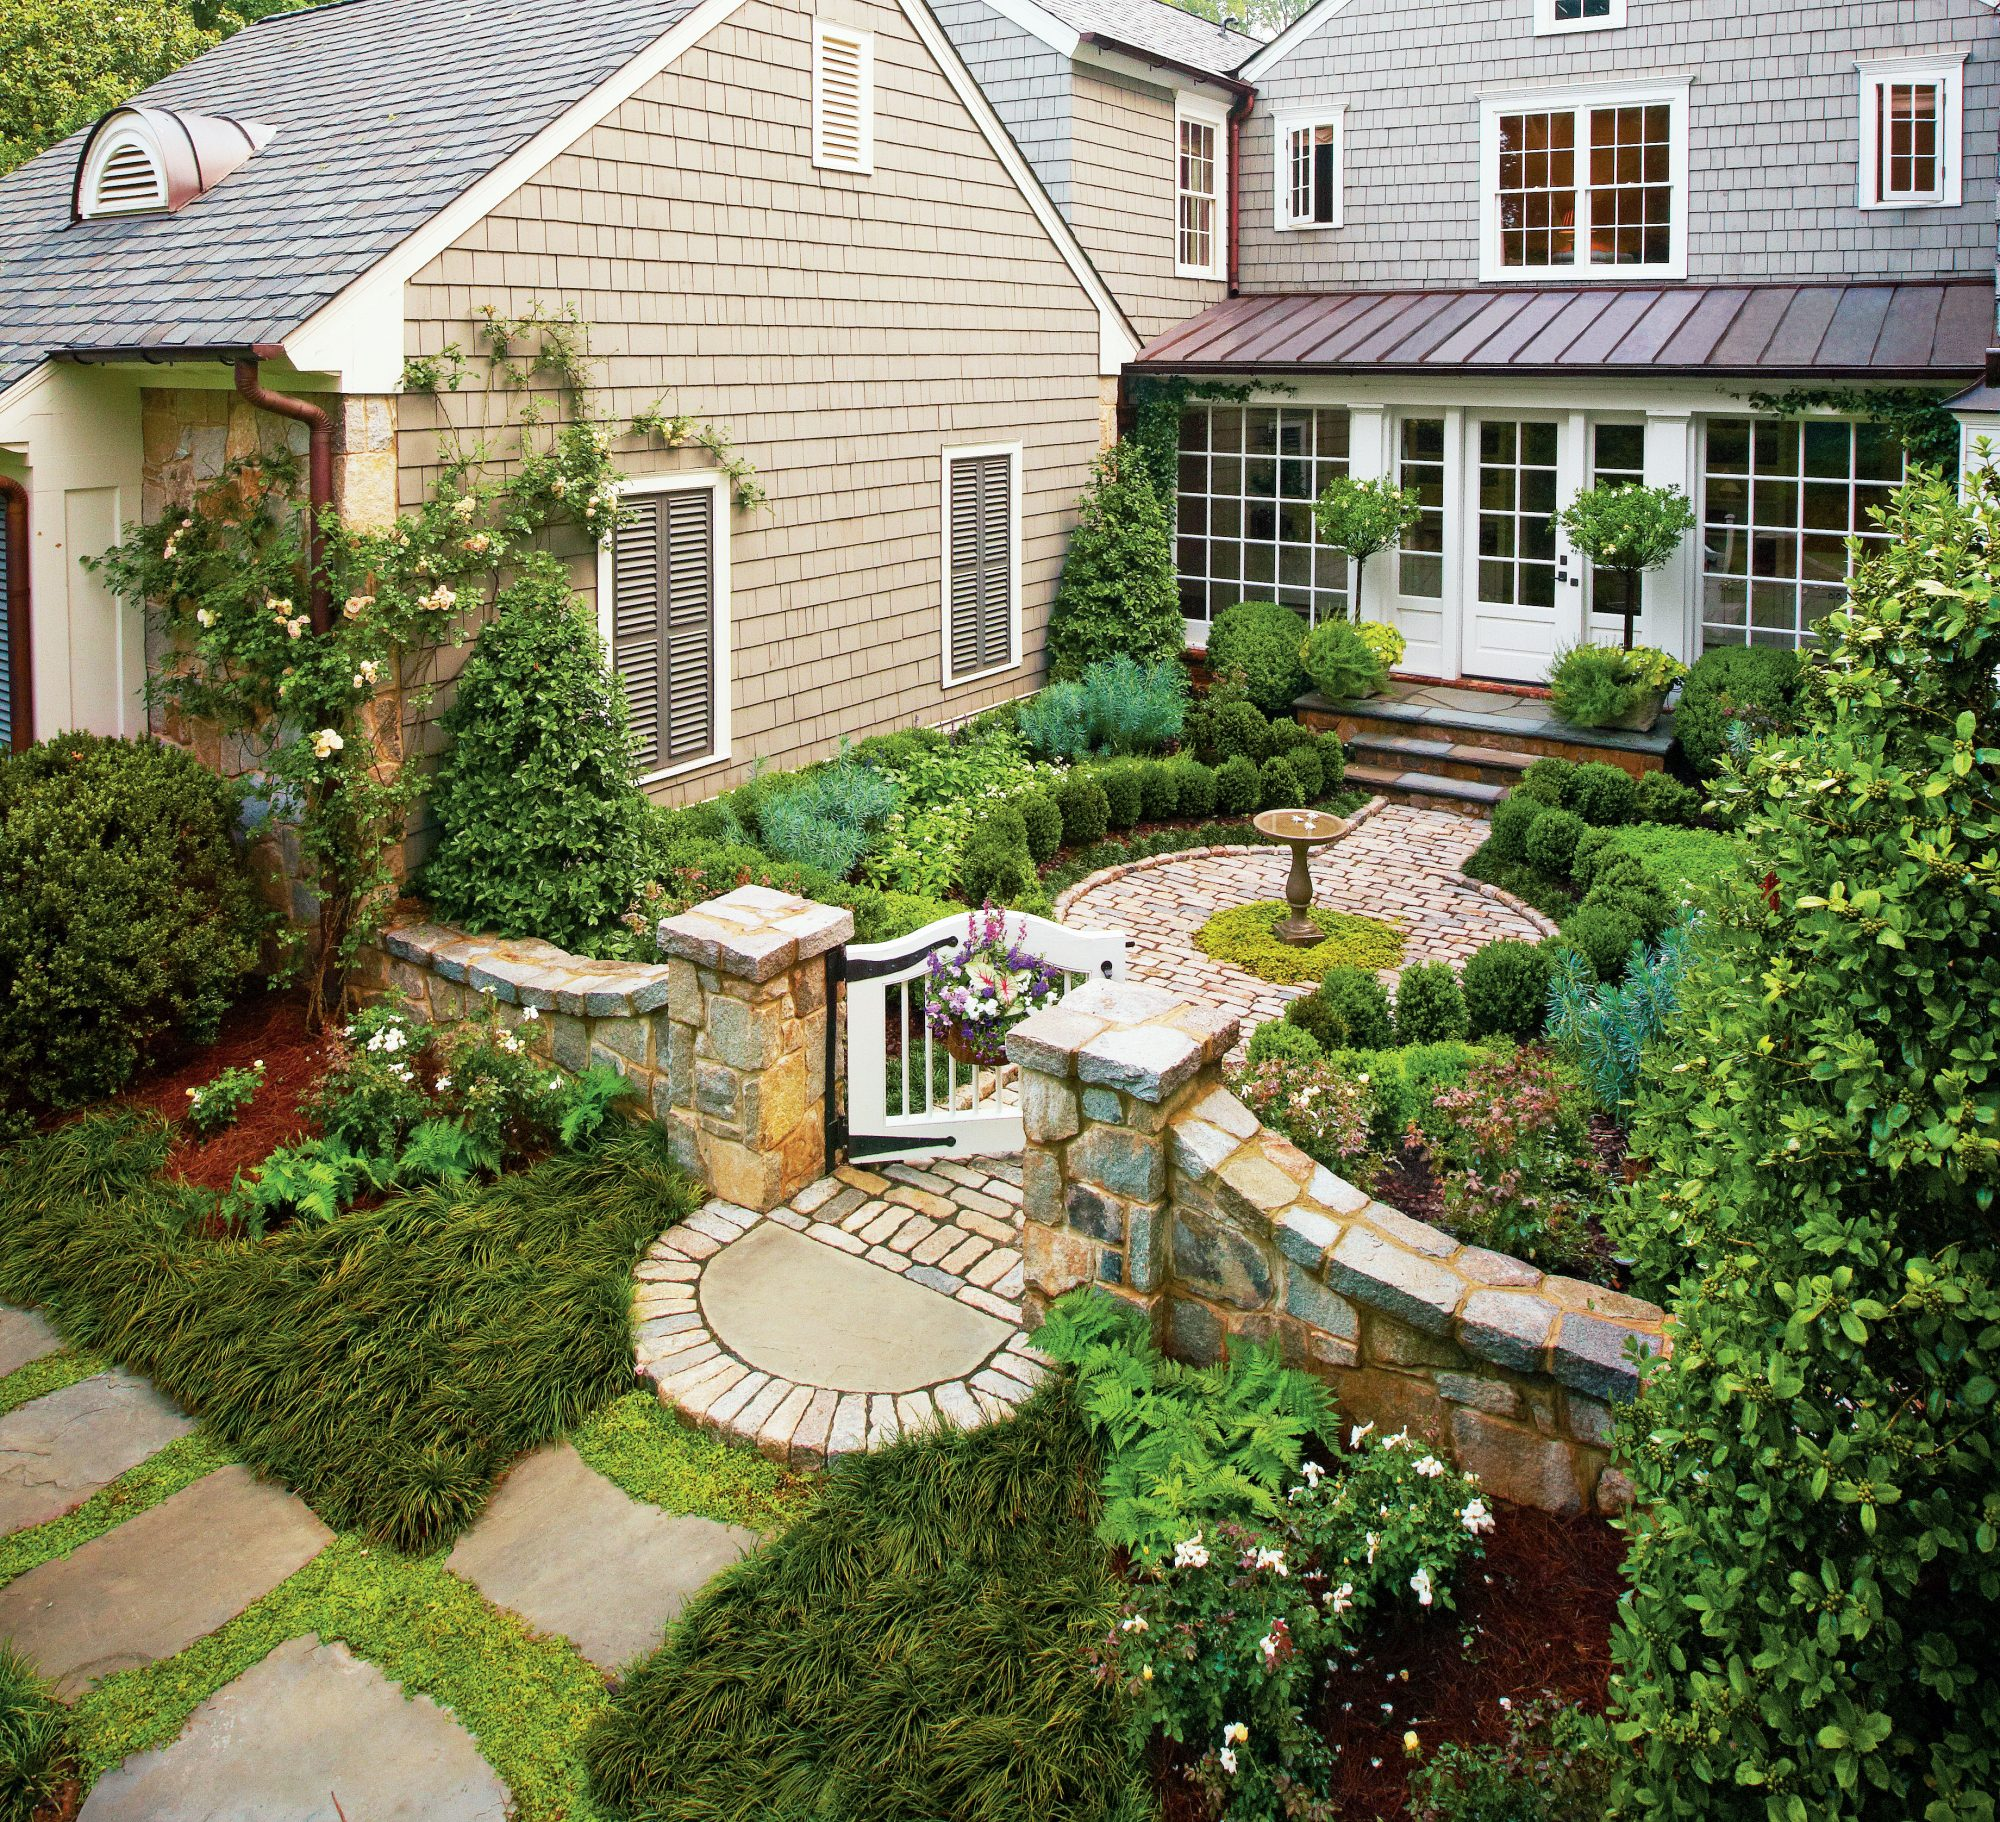 Home Landscaping Pictures 10 best landscaping ideas - southern living